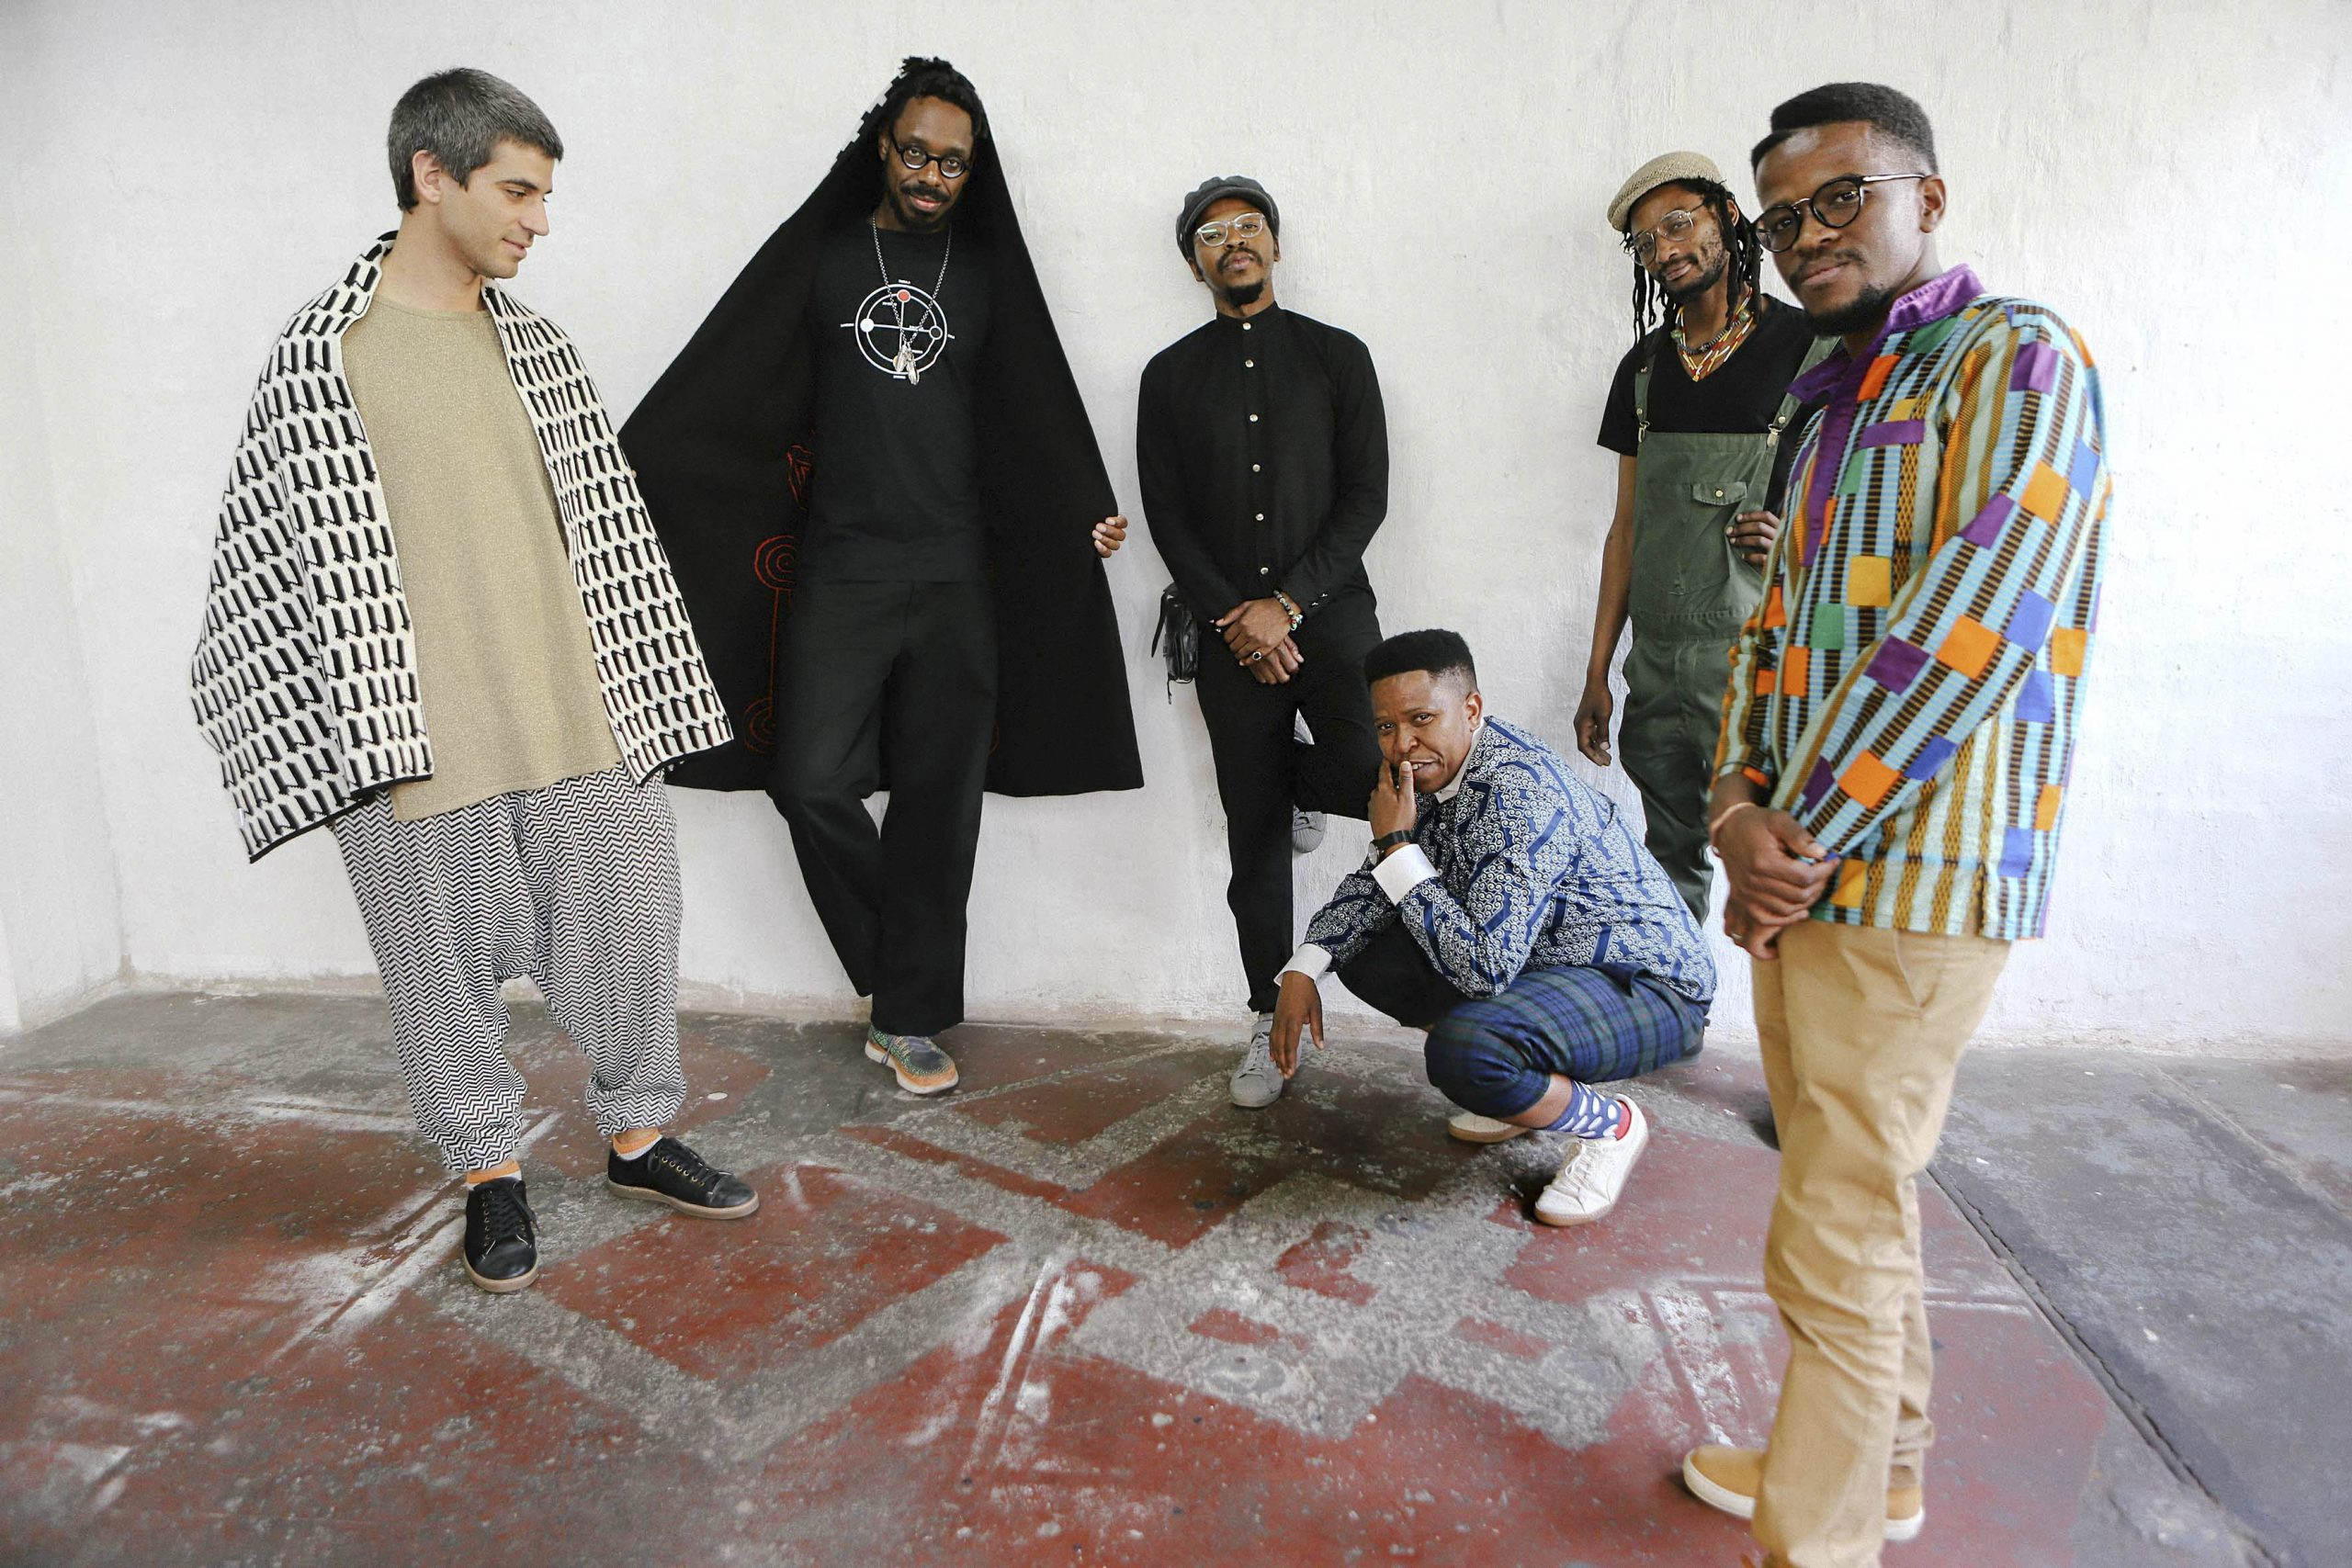 20 September 2019: Centre (crouching), vocalist Siyabonga Mthembu's United States tour with Shabaka Hutchings and the Ancestors has been cancelled. (Photograph by Tjaša Gnezda)